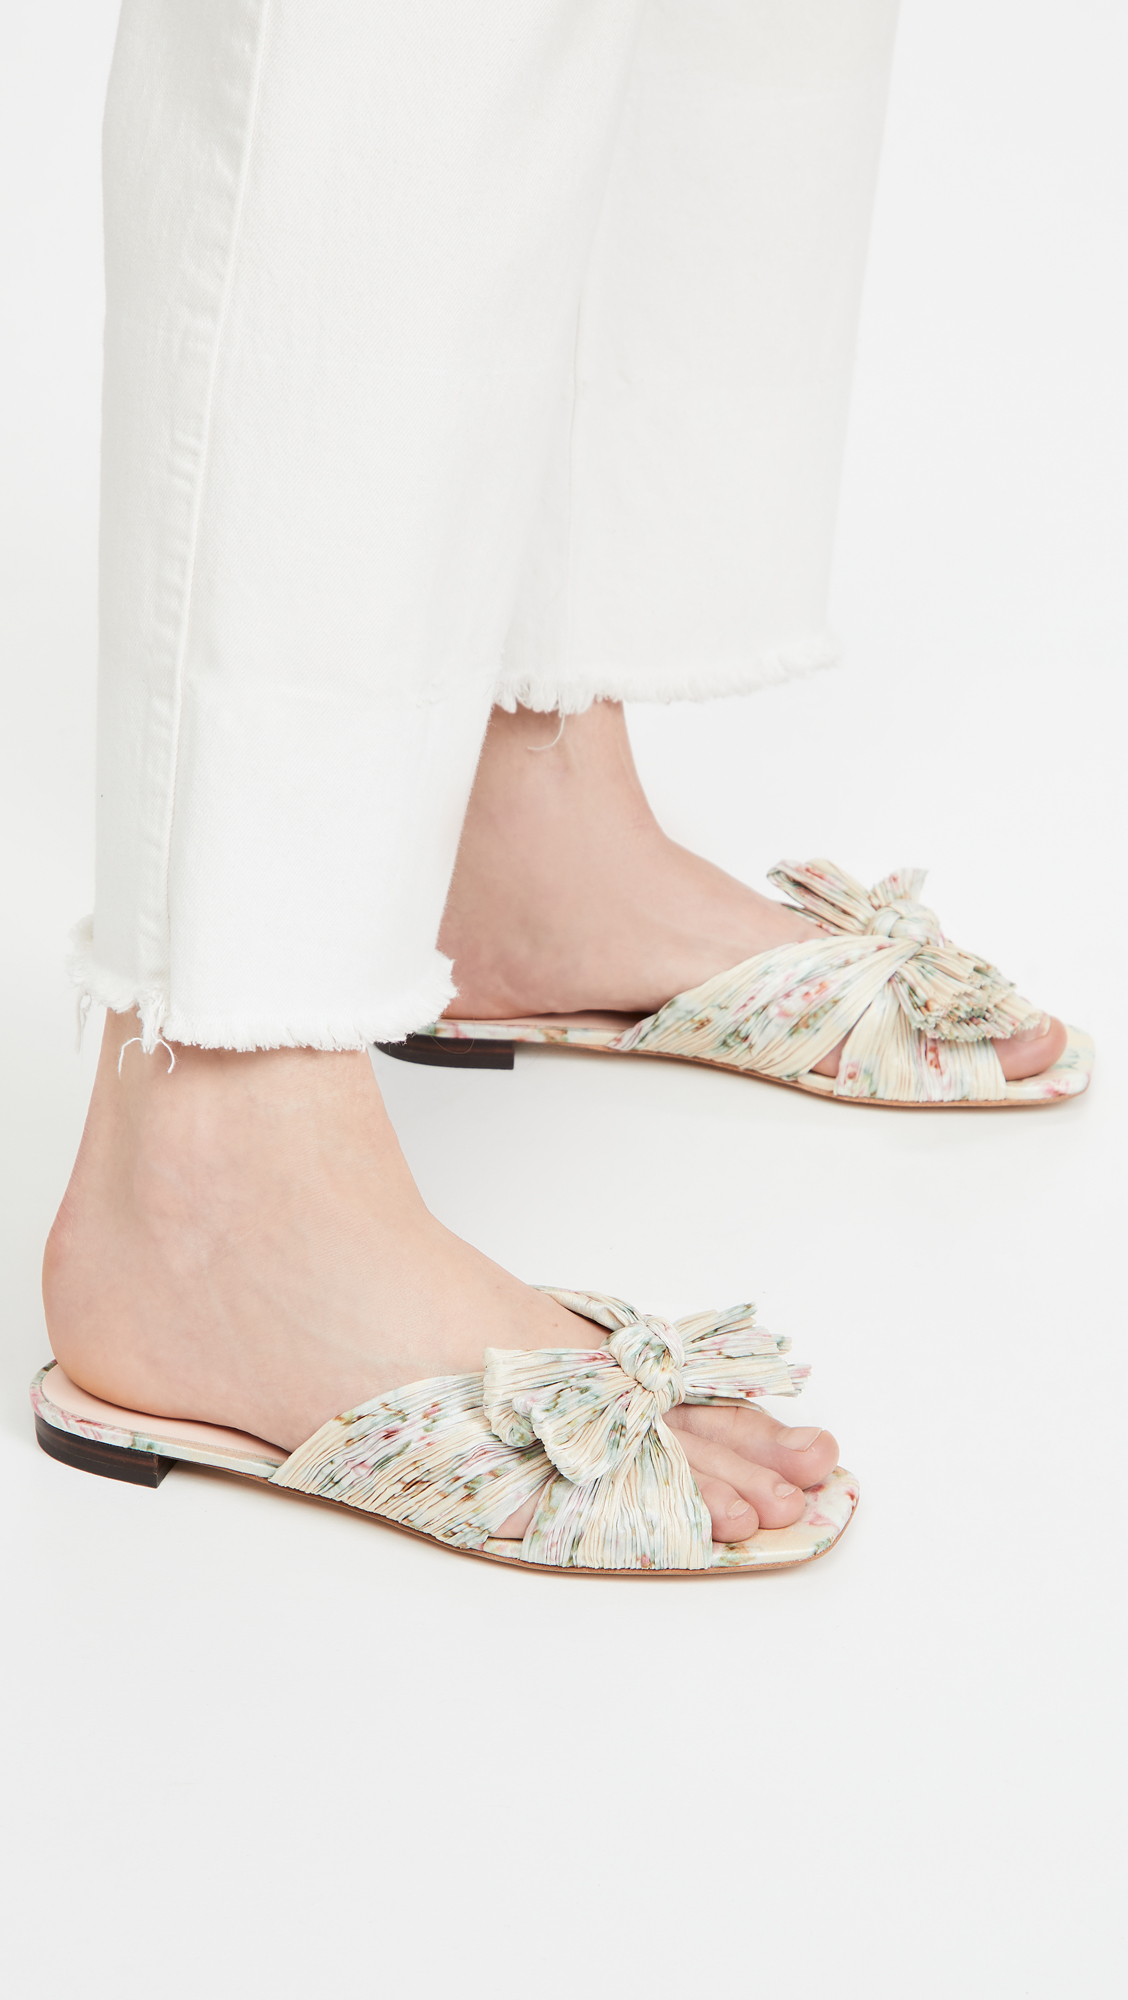 woman wearing Loeffler Randall Daphne Flat Sandals and white jeans